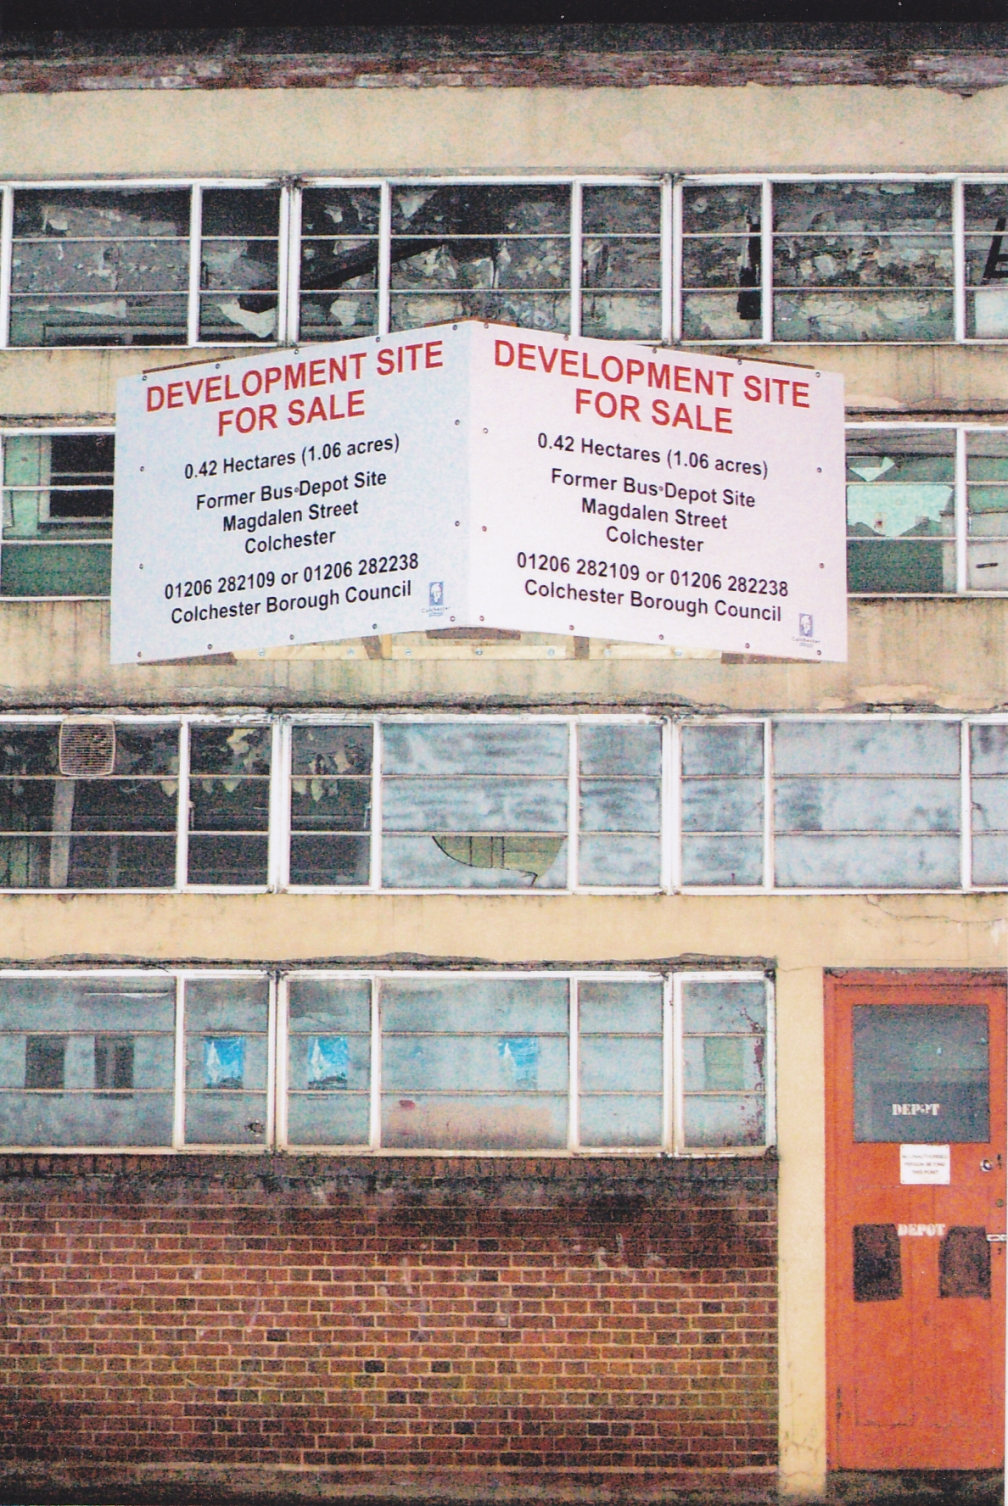 MAGDALEN ST DEPOT FOR SALE 12-2-15